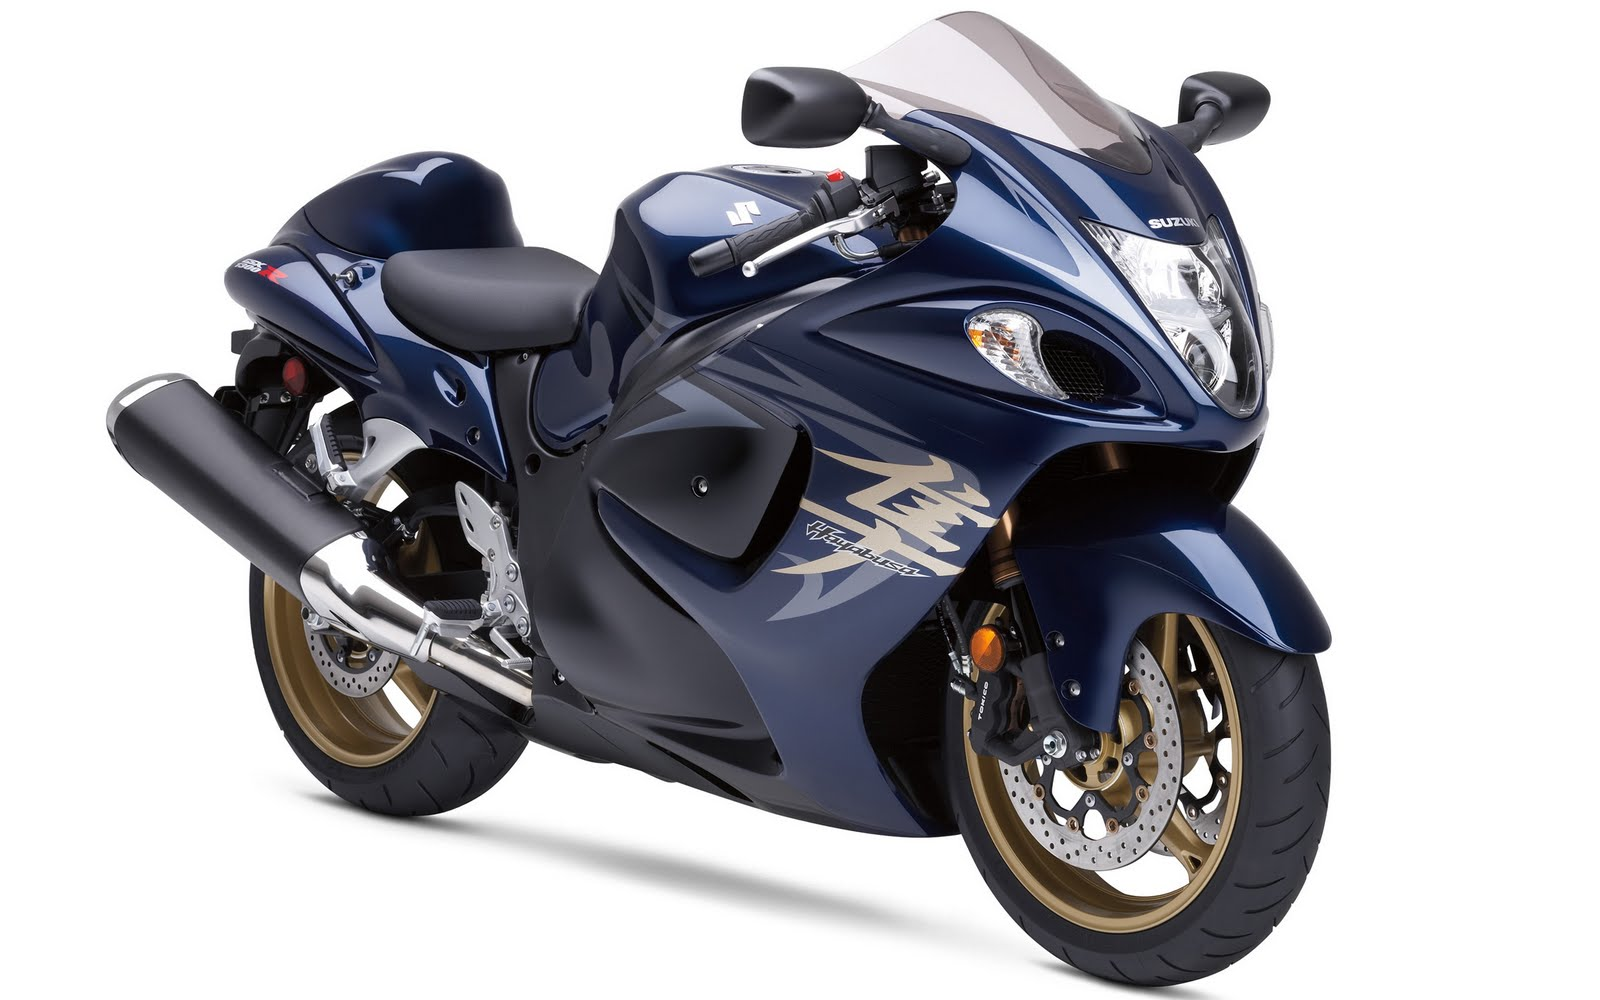 http://1.bp.blogspot.com/-_ChHaDpg9Rw/TXSzkN_qJbI/AAAAAAAAGKE/JjW5WMrsjJc/s1600/suzuki-hayabusa-latest-wallpapers-1600-1920-1280-1028-2011-2010-2009-2500-models-sexy-girls-super-bike-sexy-bike-topless-girls-on-bike-widescreen-wallpapers-hd-02.jpg